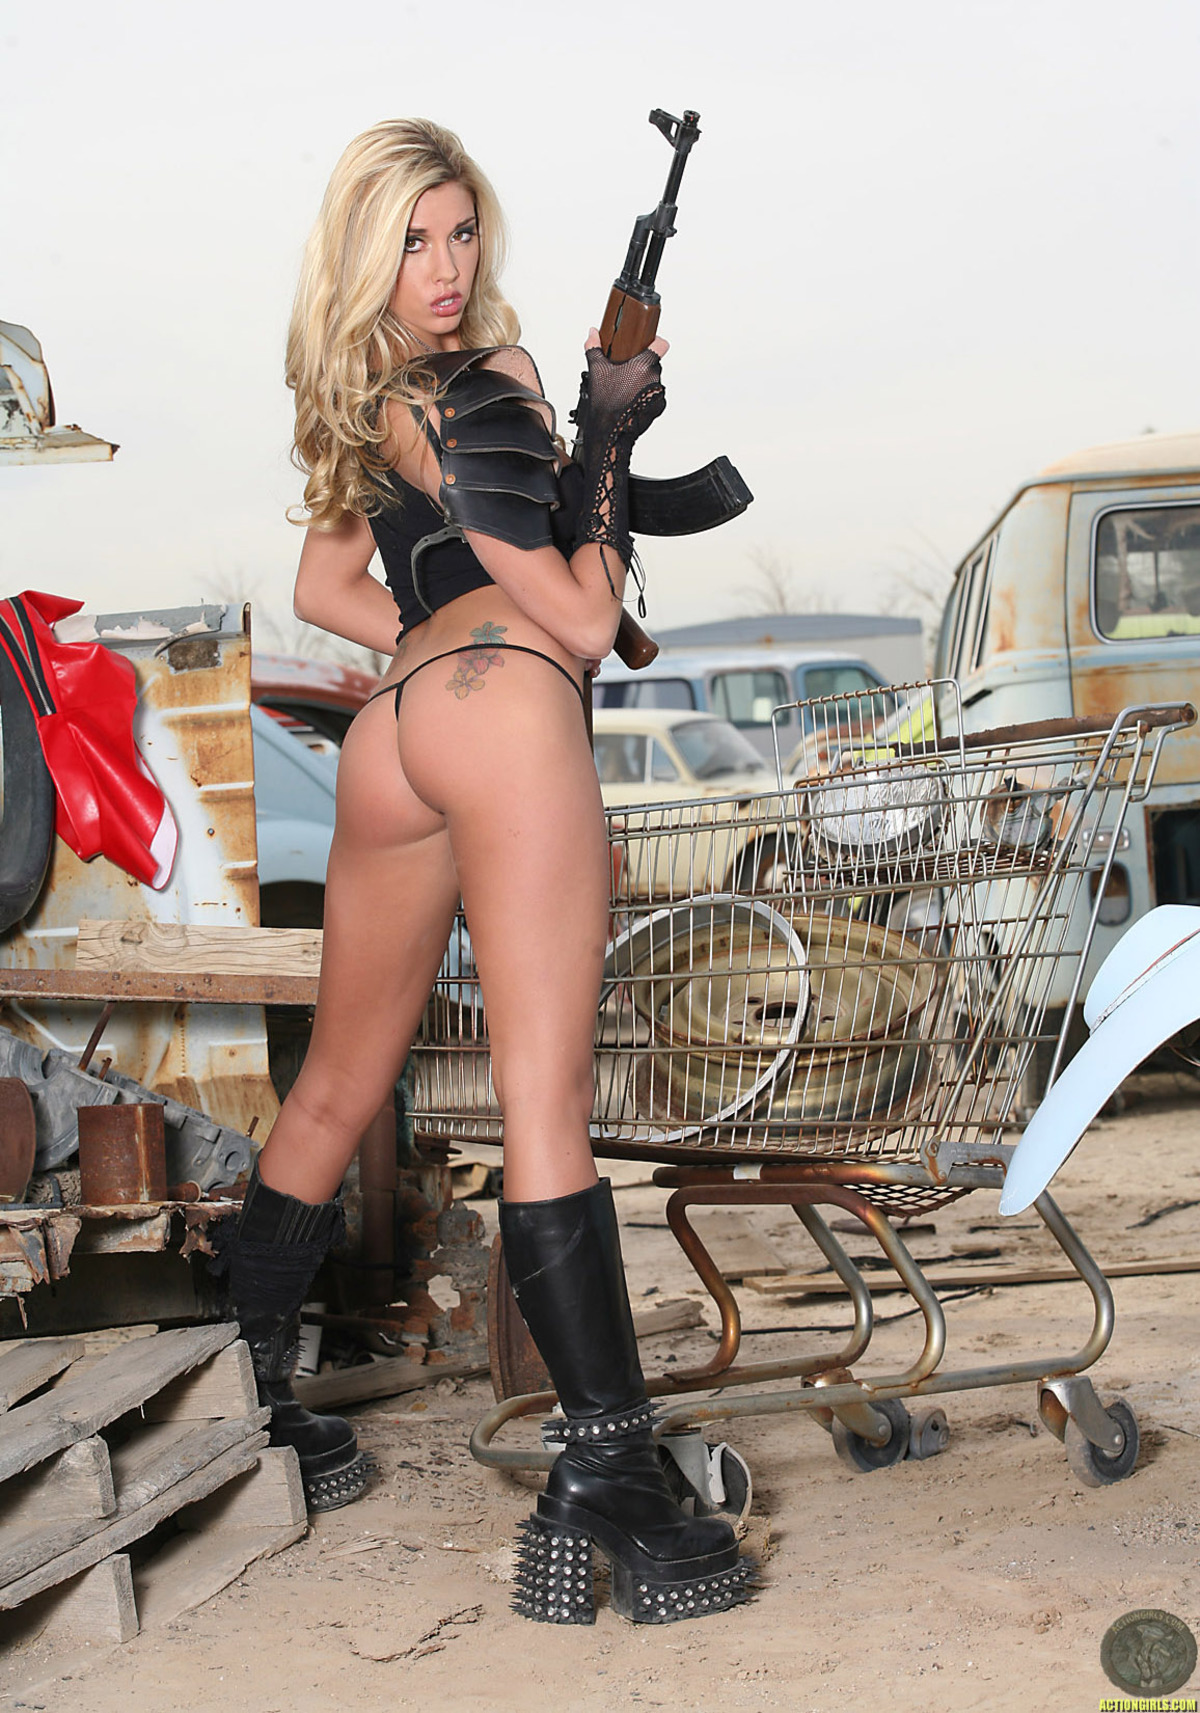 Action girls galleries and pics for free